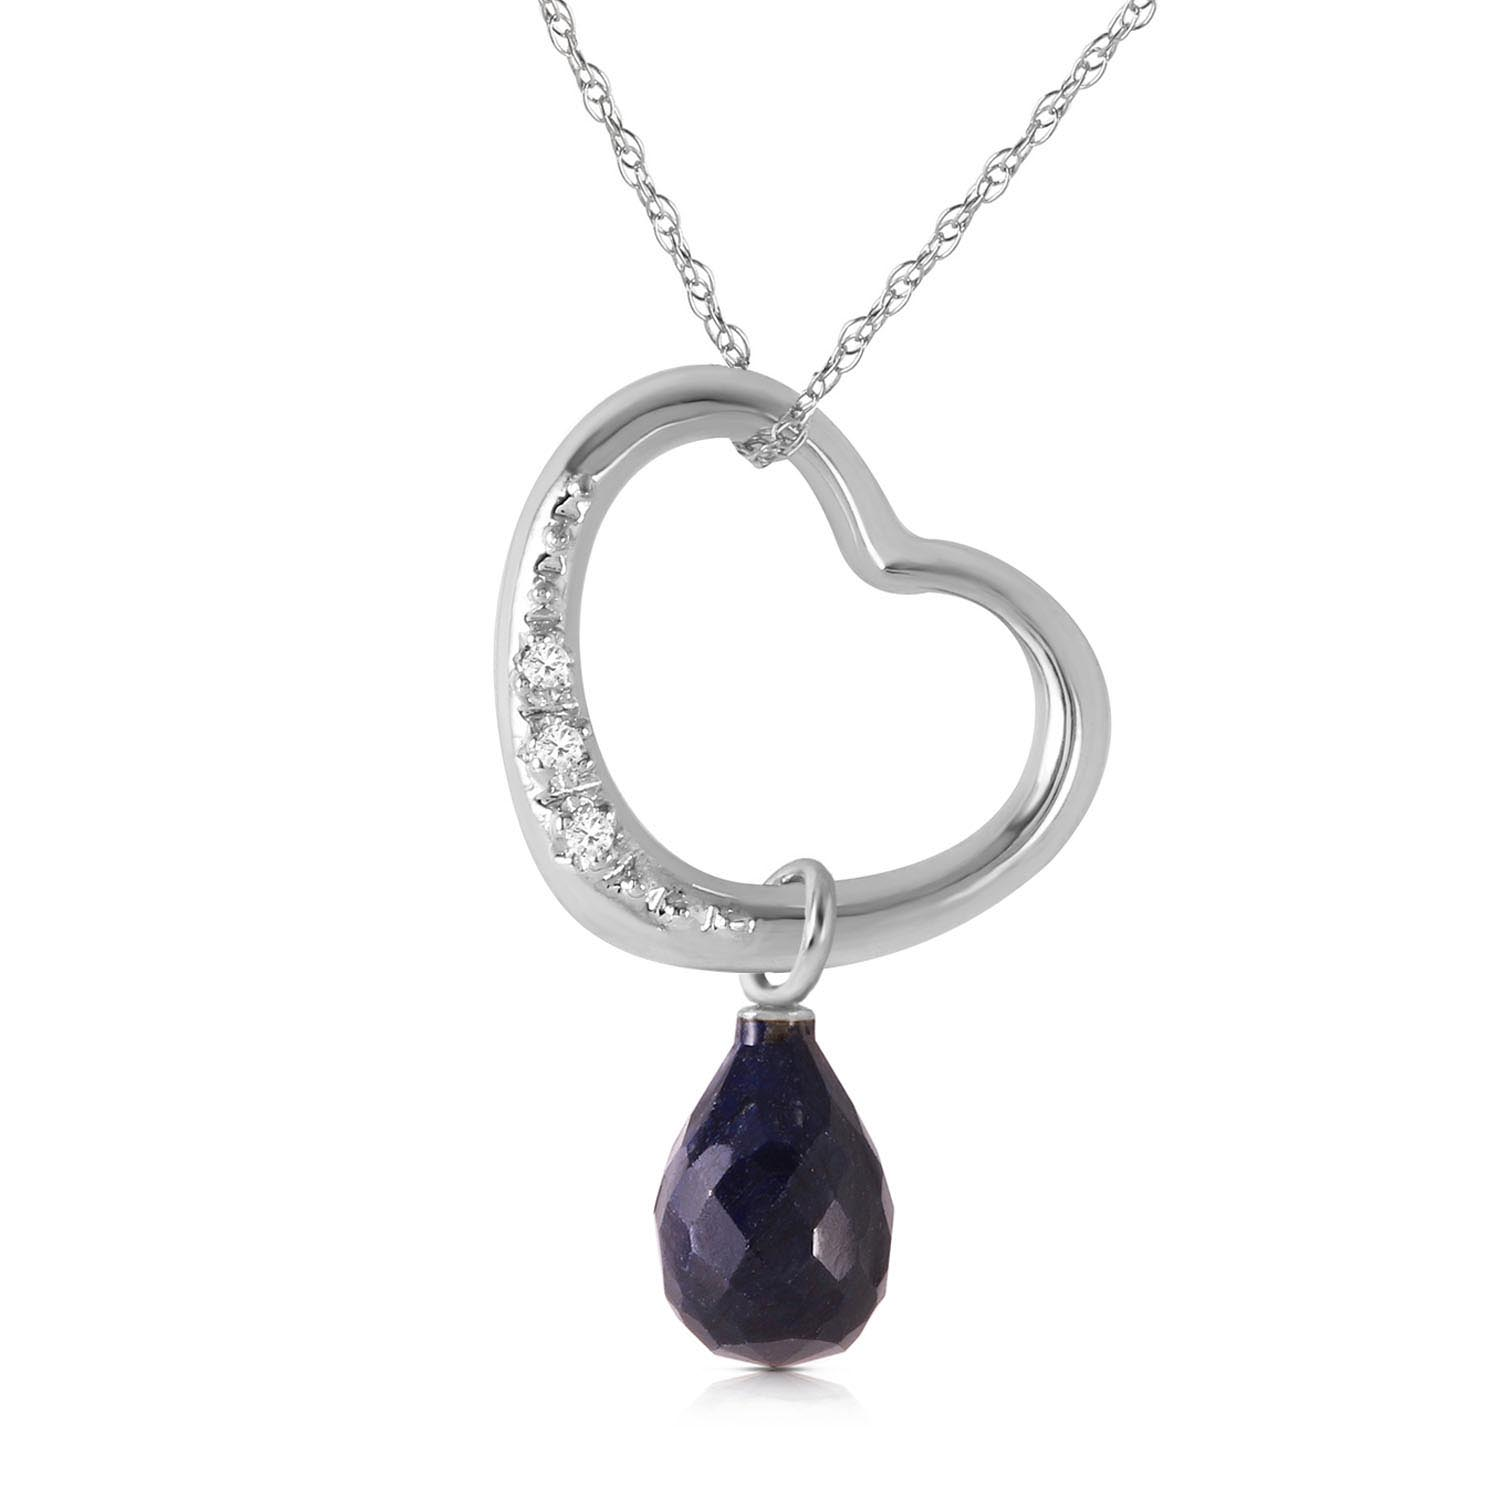 Bargain Sapphire and Diamond Pendant Necklace 3.3ct in 9ct White Gold Stockists